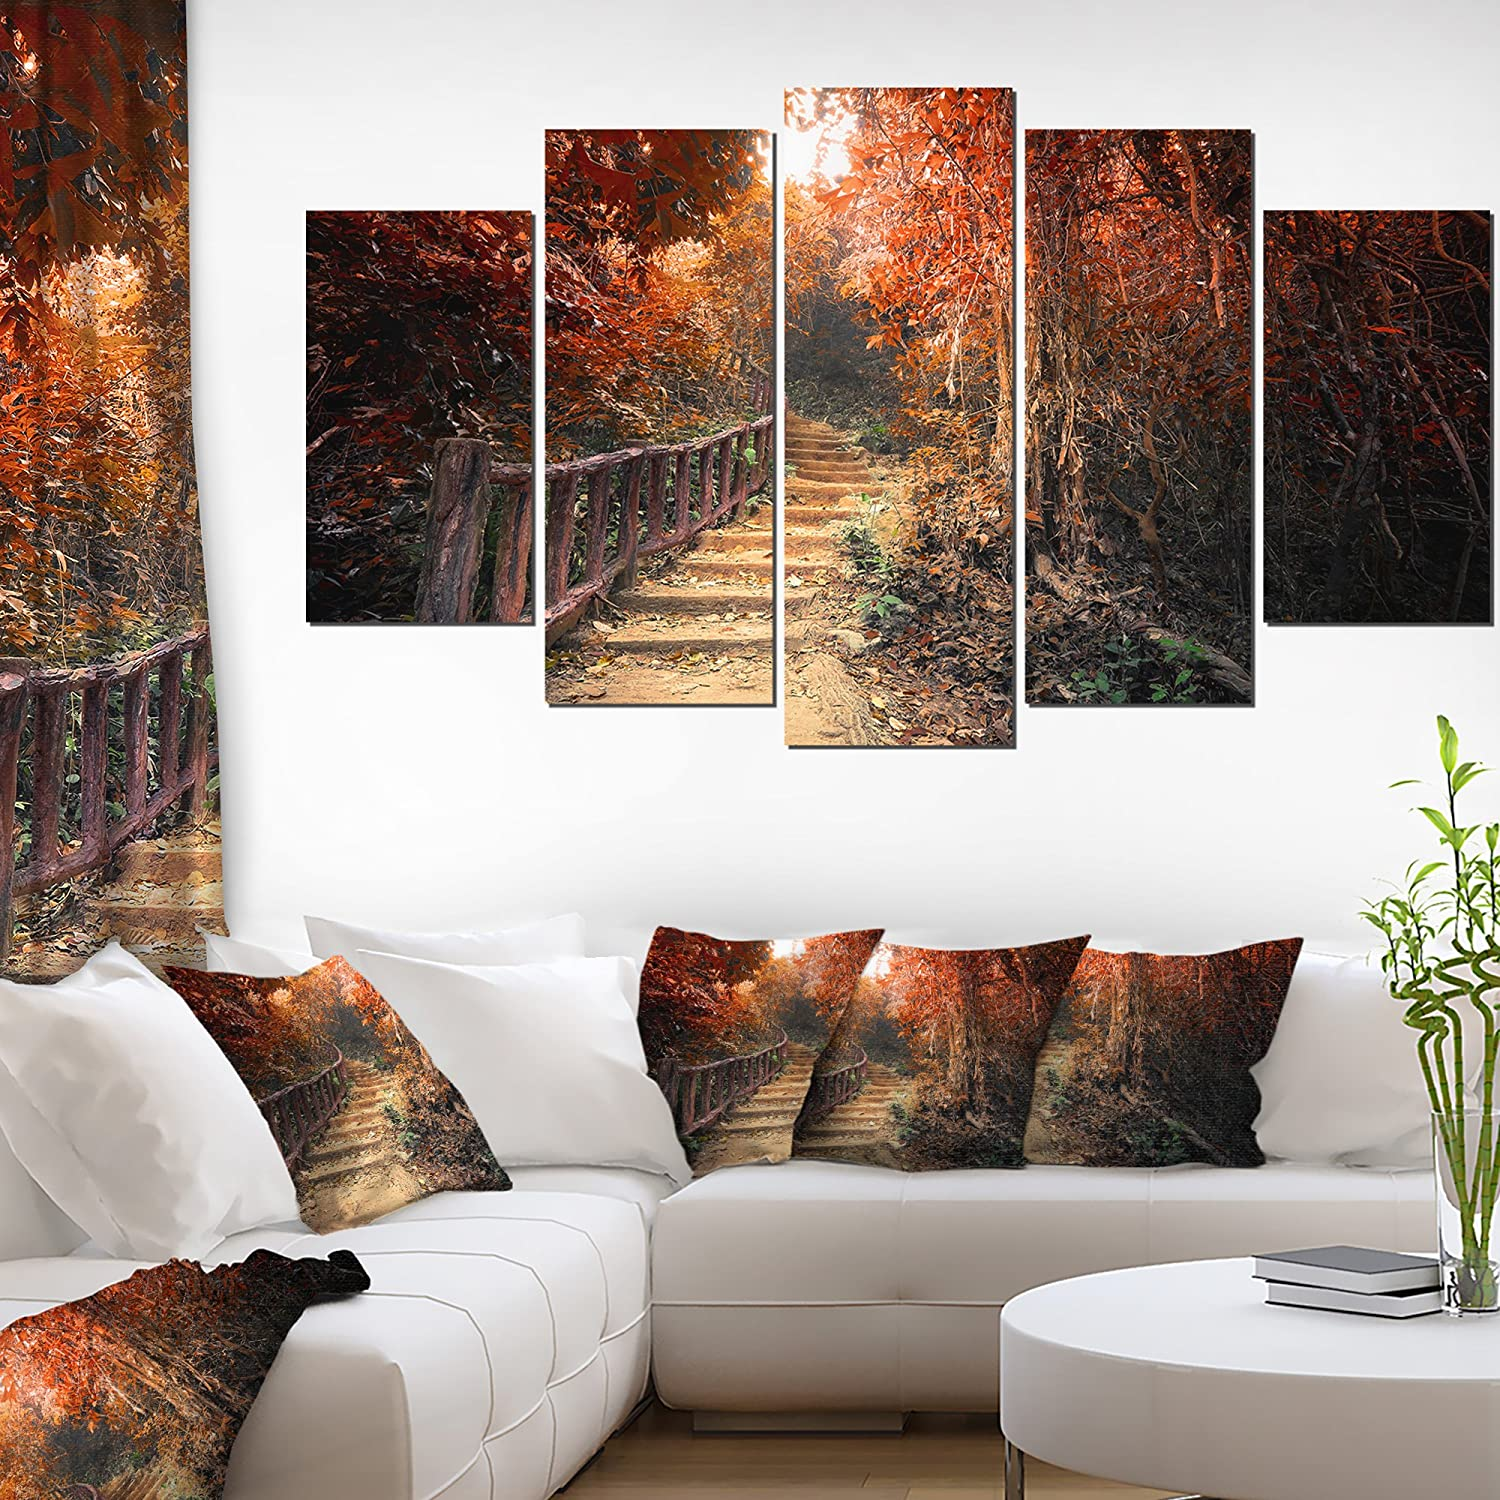 Designart Stairway Fall Forest-Landscape Photo Canvas Print-60x32 5 Piece, 60x32-5 Panels Diamond Shape, Red